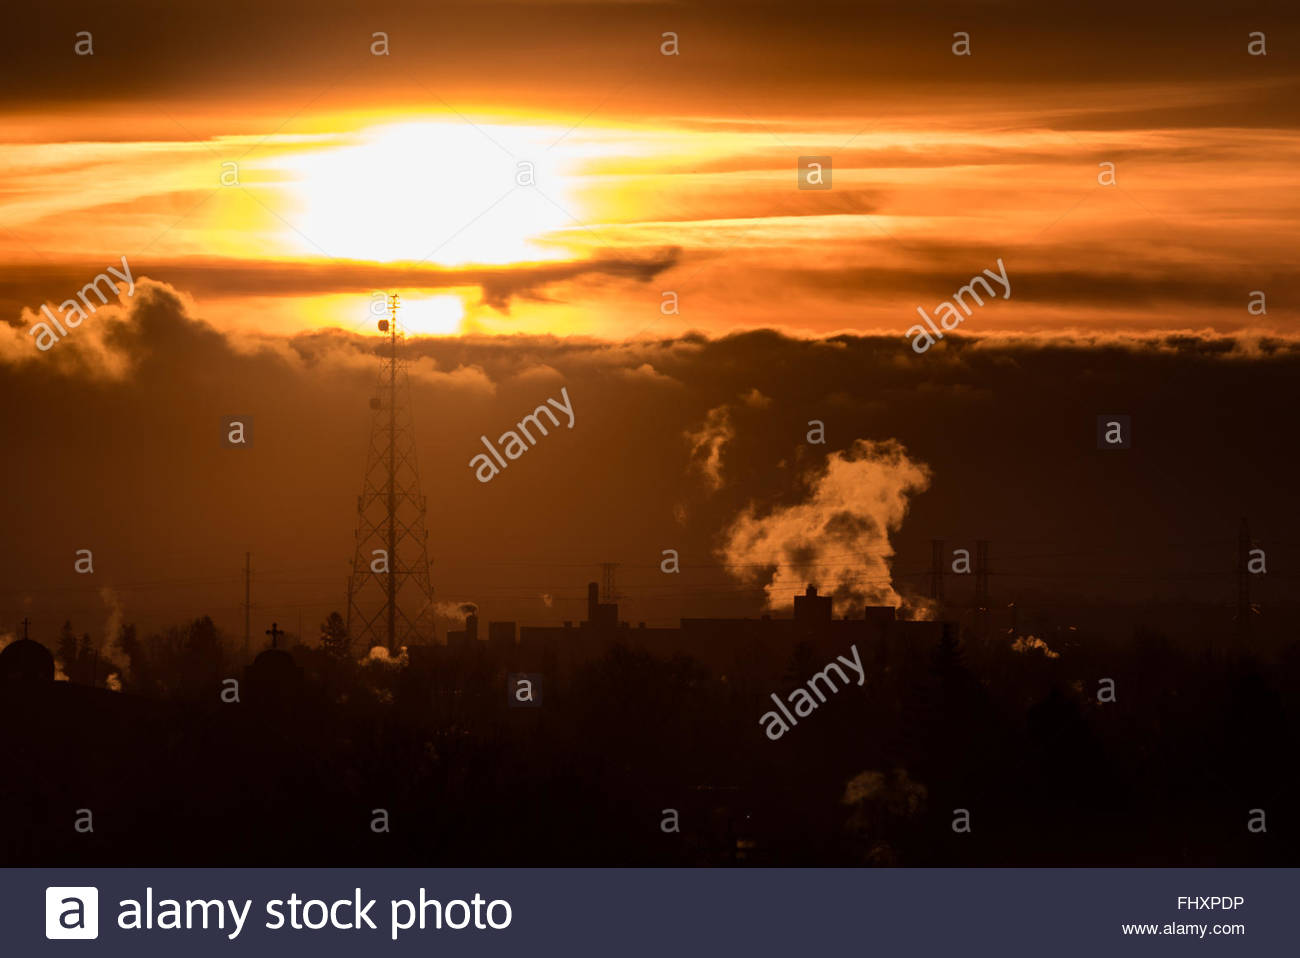 Radio or communication tower in the distance as the sun rises in the Winter morning beautifully. - Stock Image